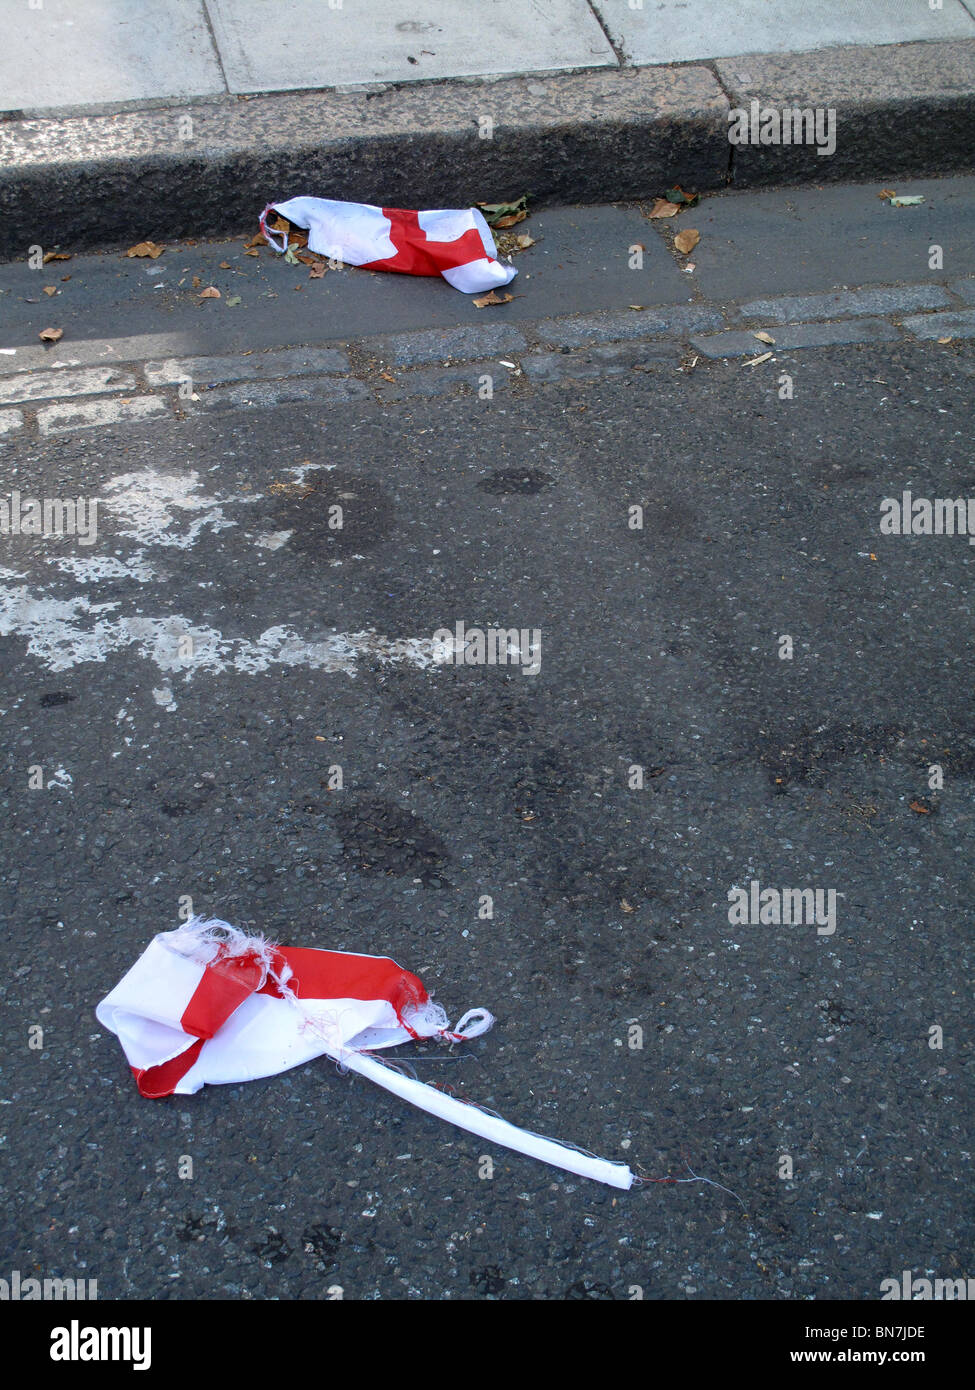 London July 2010.World cup England flags discarded in the gutter after England was defeated by Germany - Stock Image